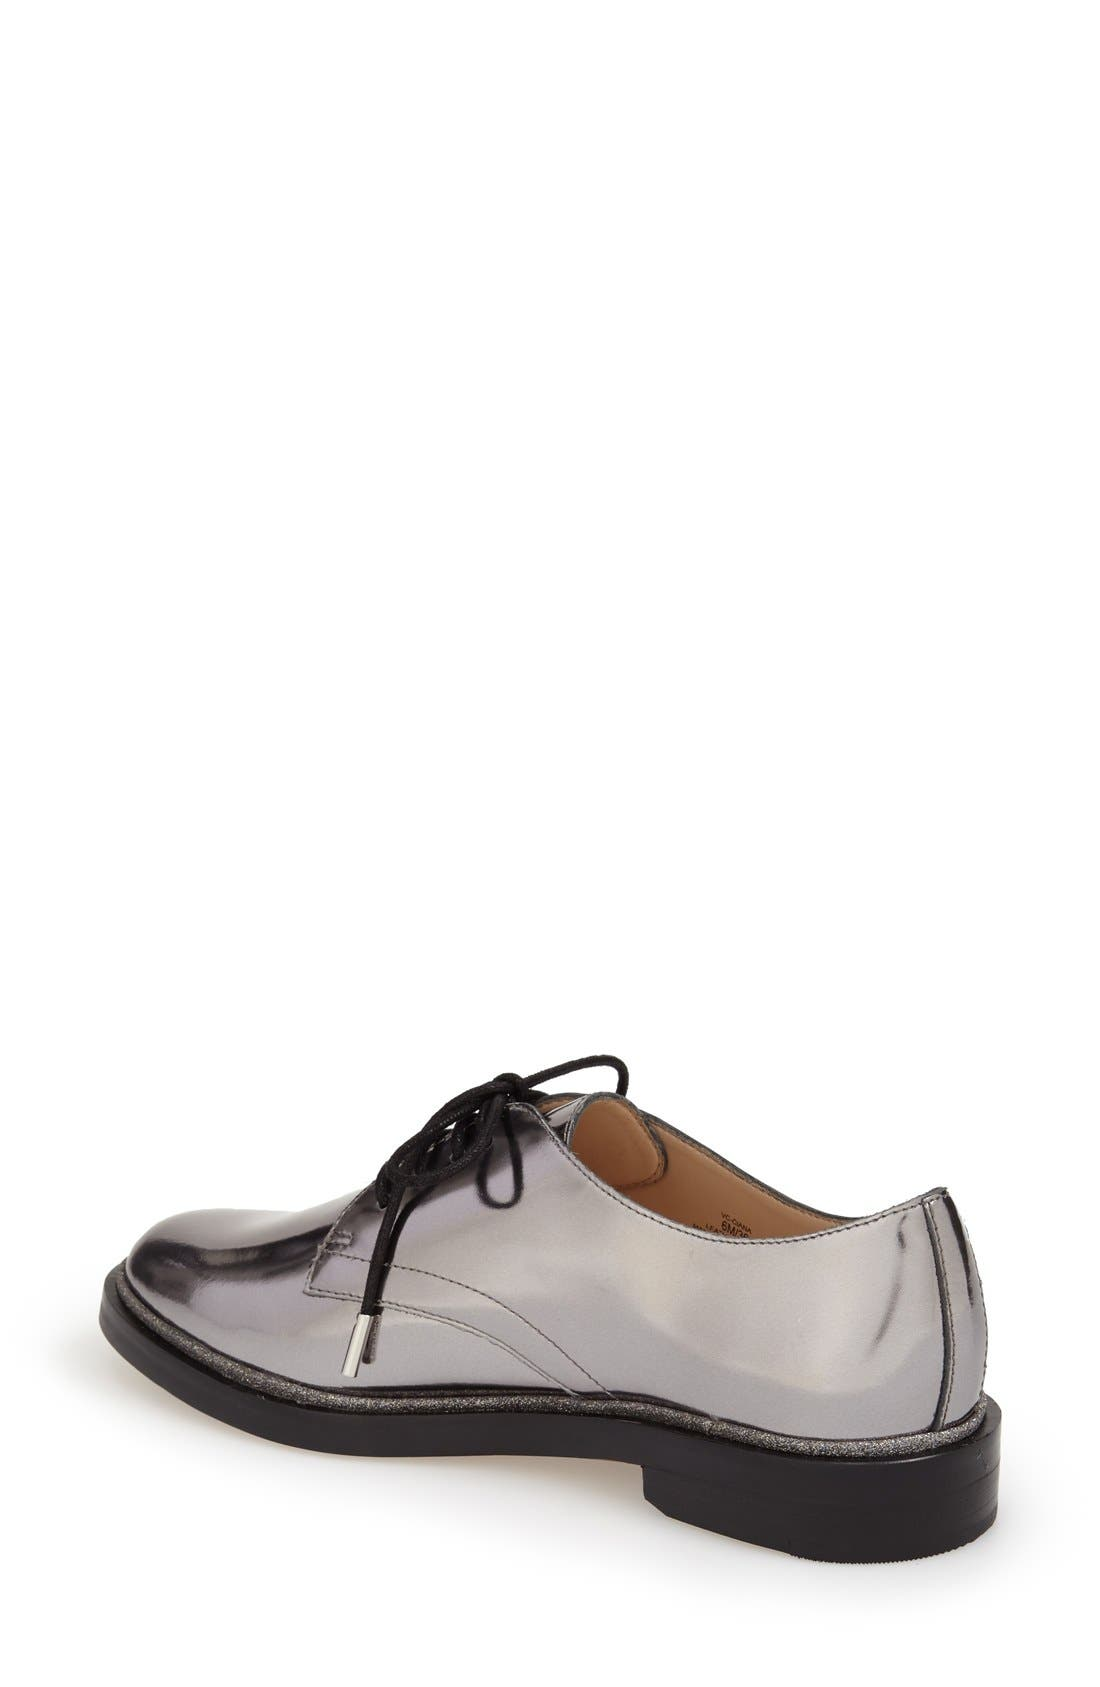 Alternate Image 2  - Vince Camuto 'Ciana' Oxford (Women)